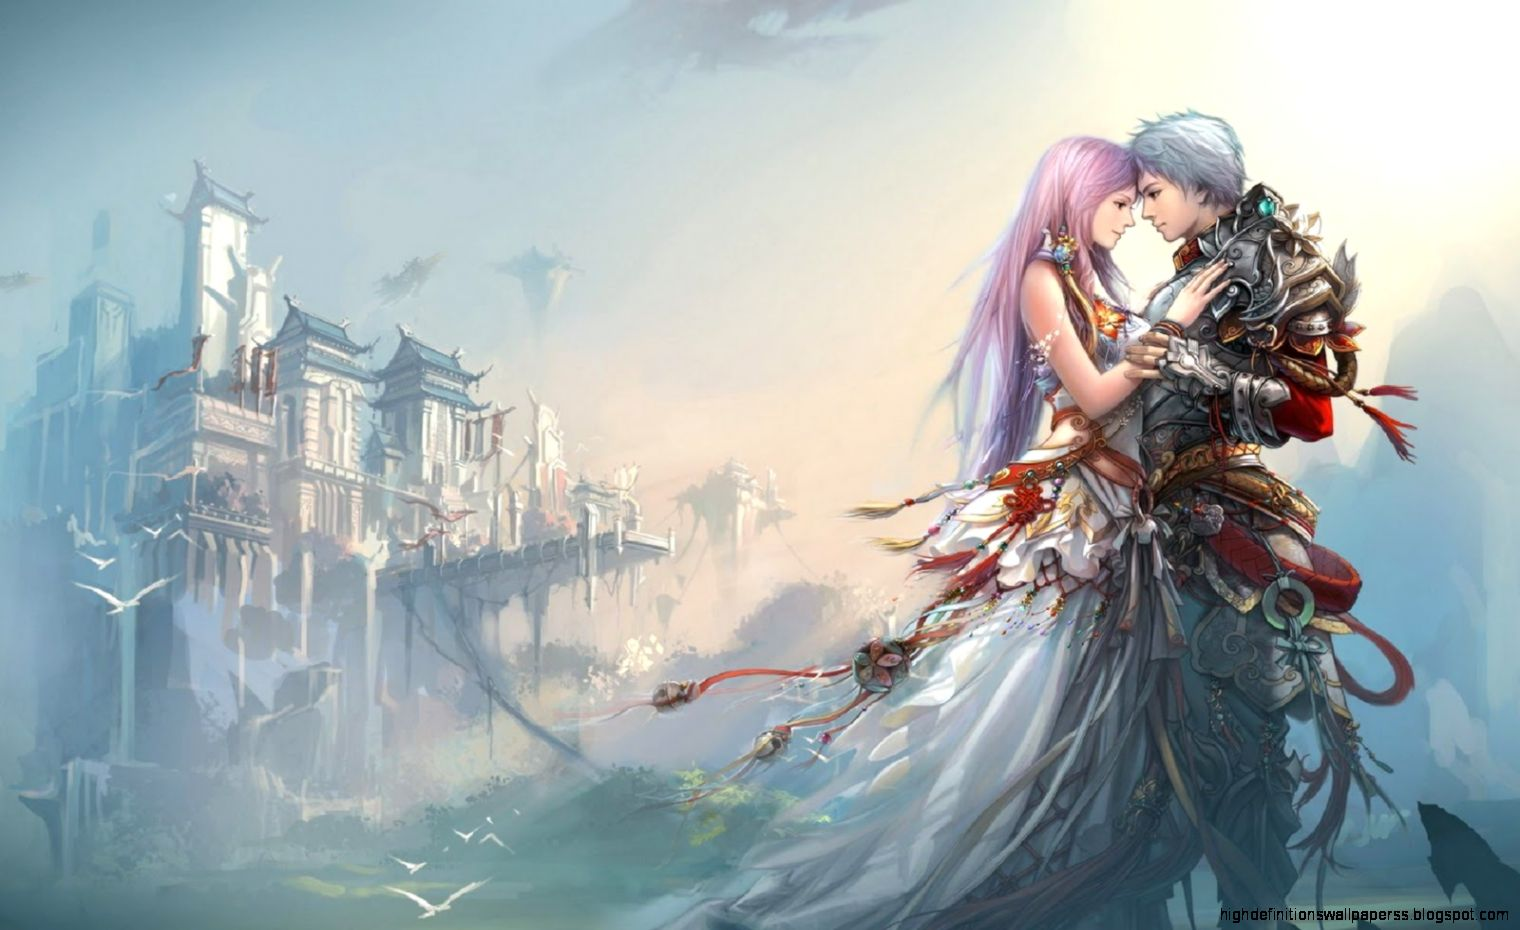 Sad Anime Love Wallpapers Hd High Definitions Wallpapers